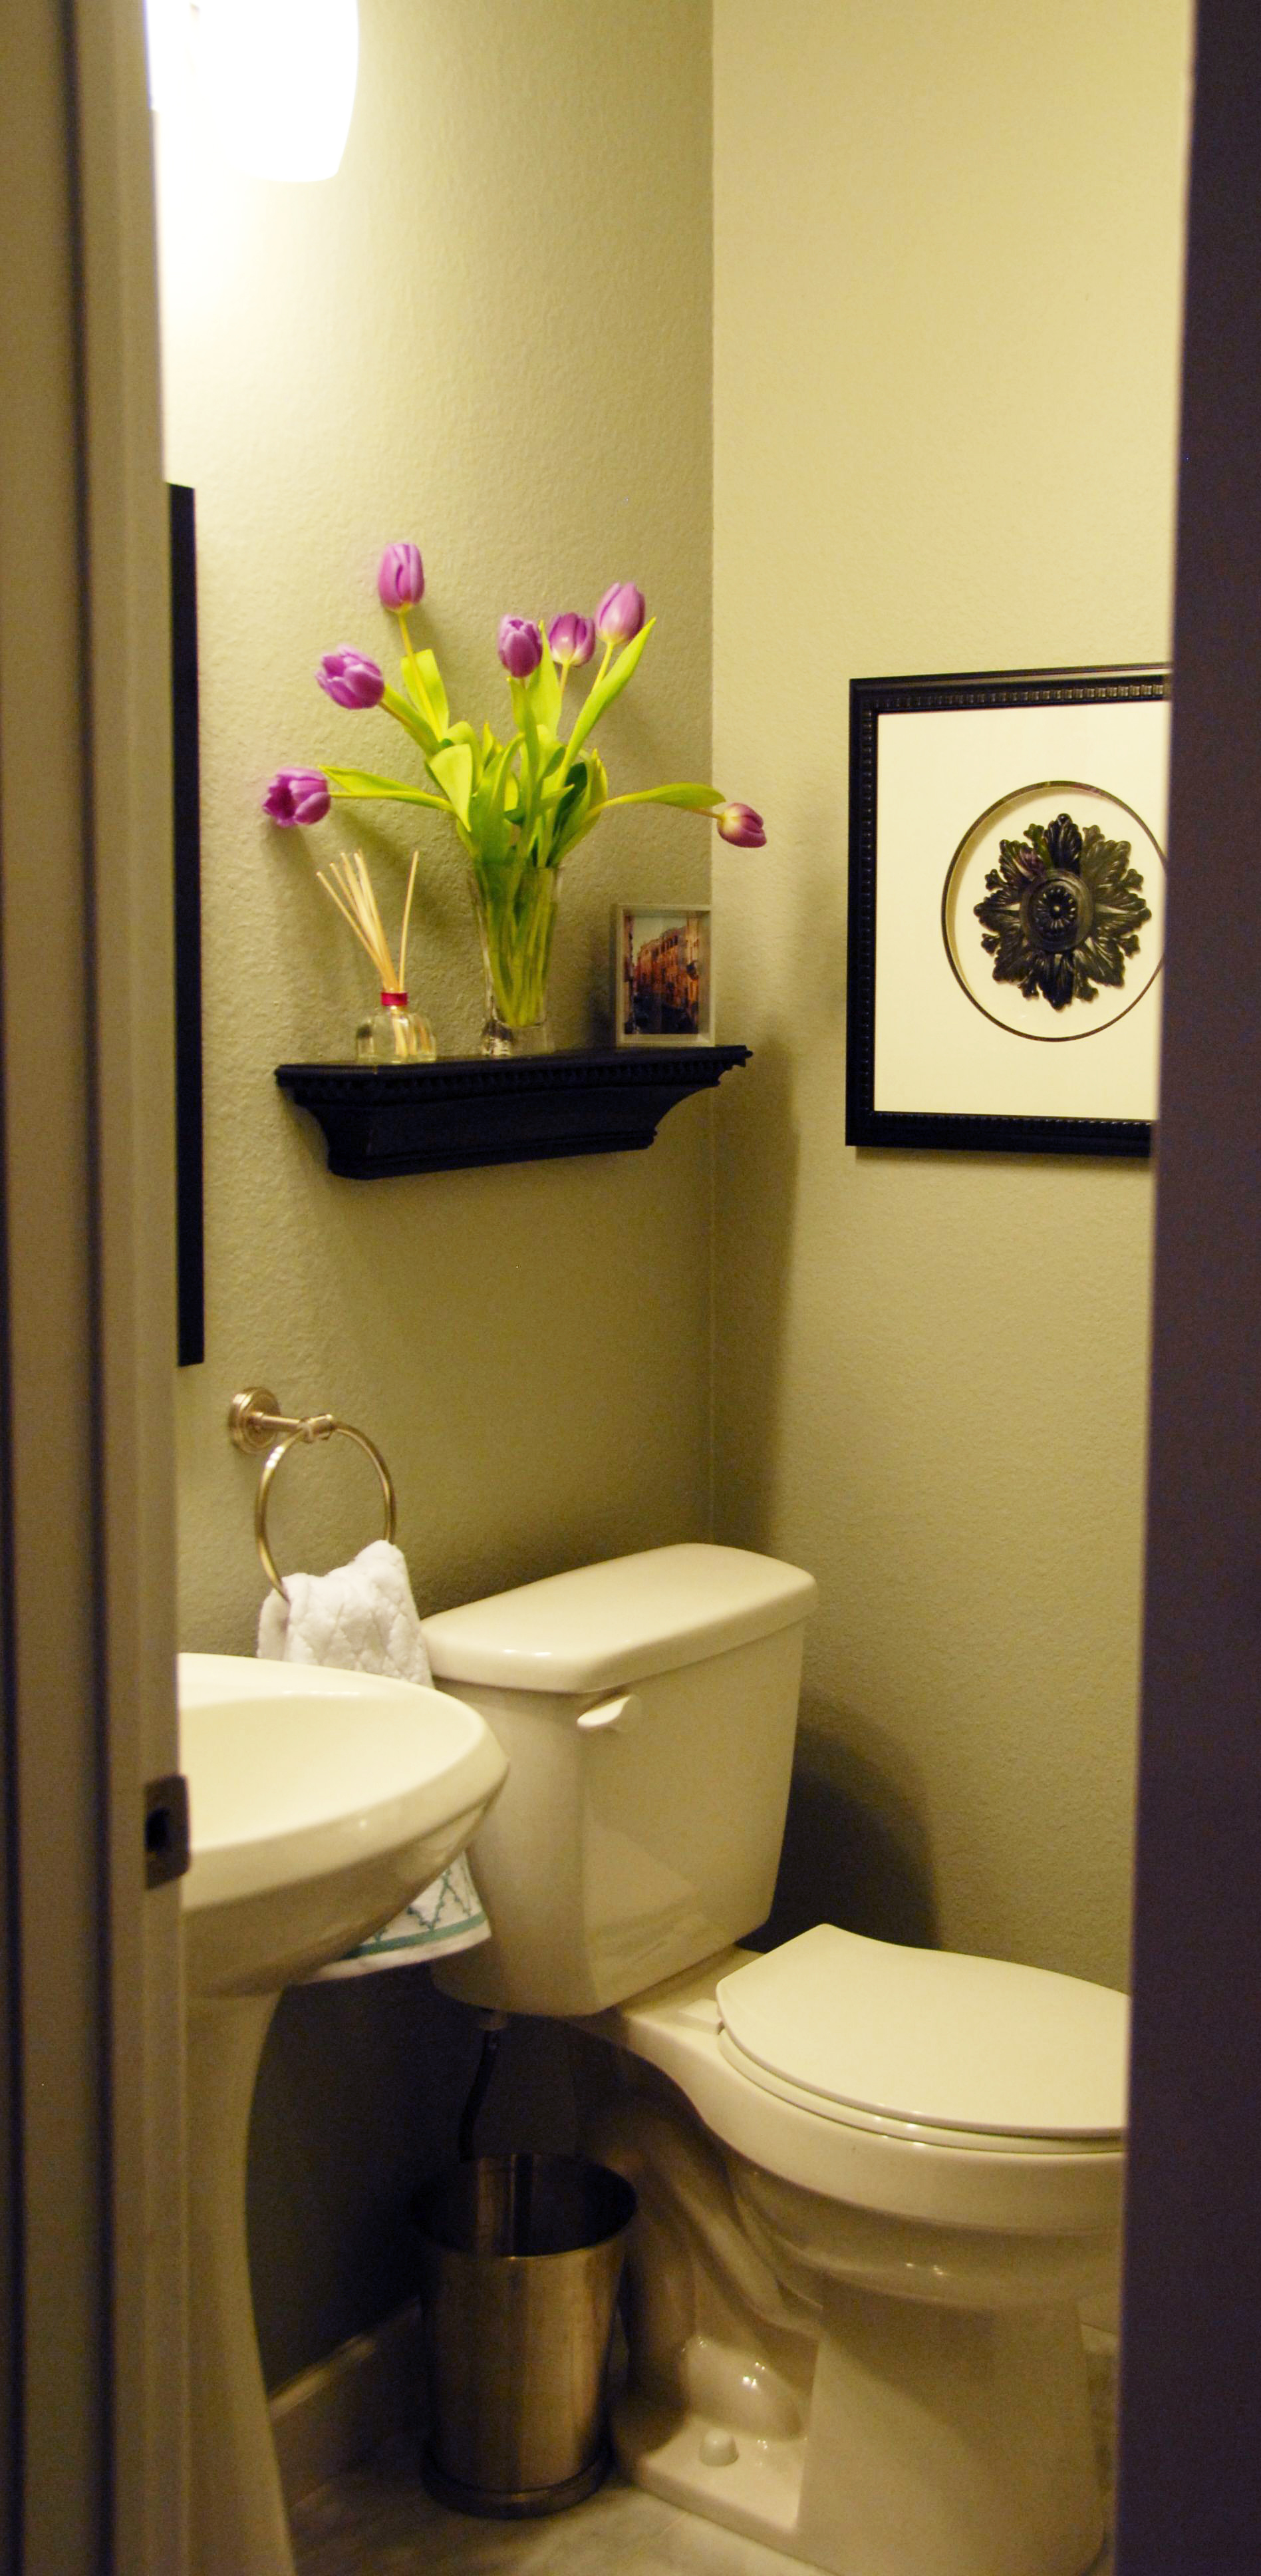 After - Our beautiful powder room!